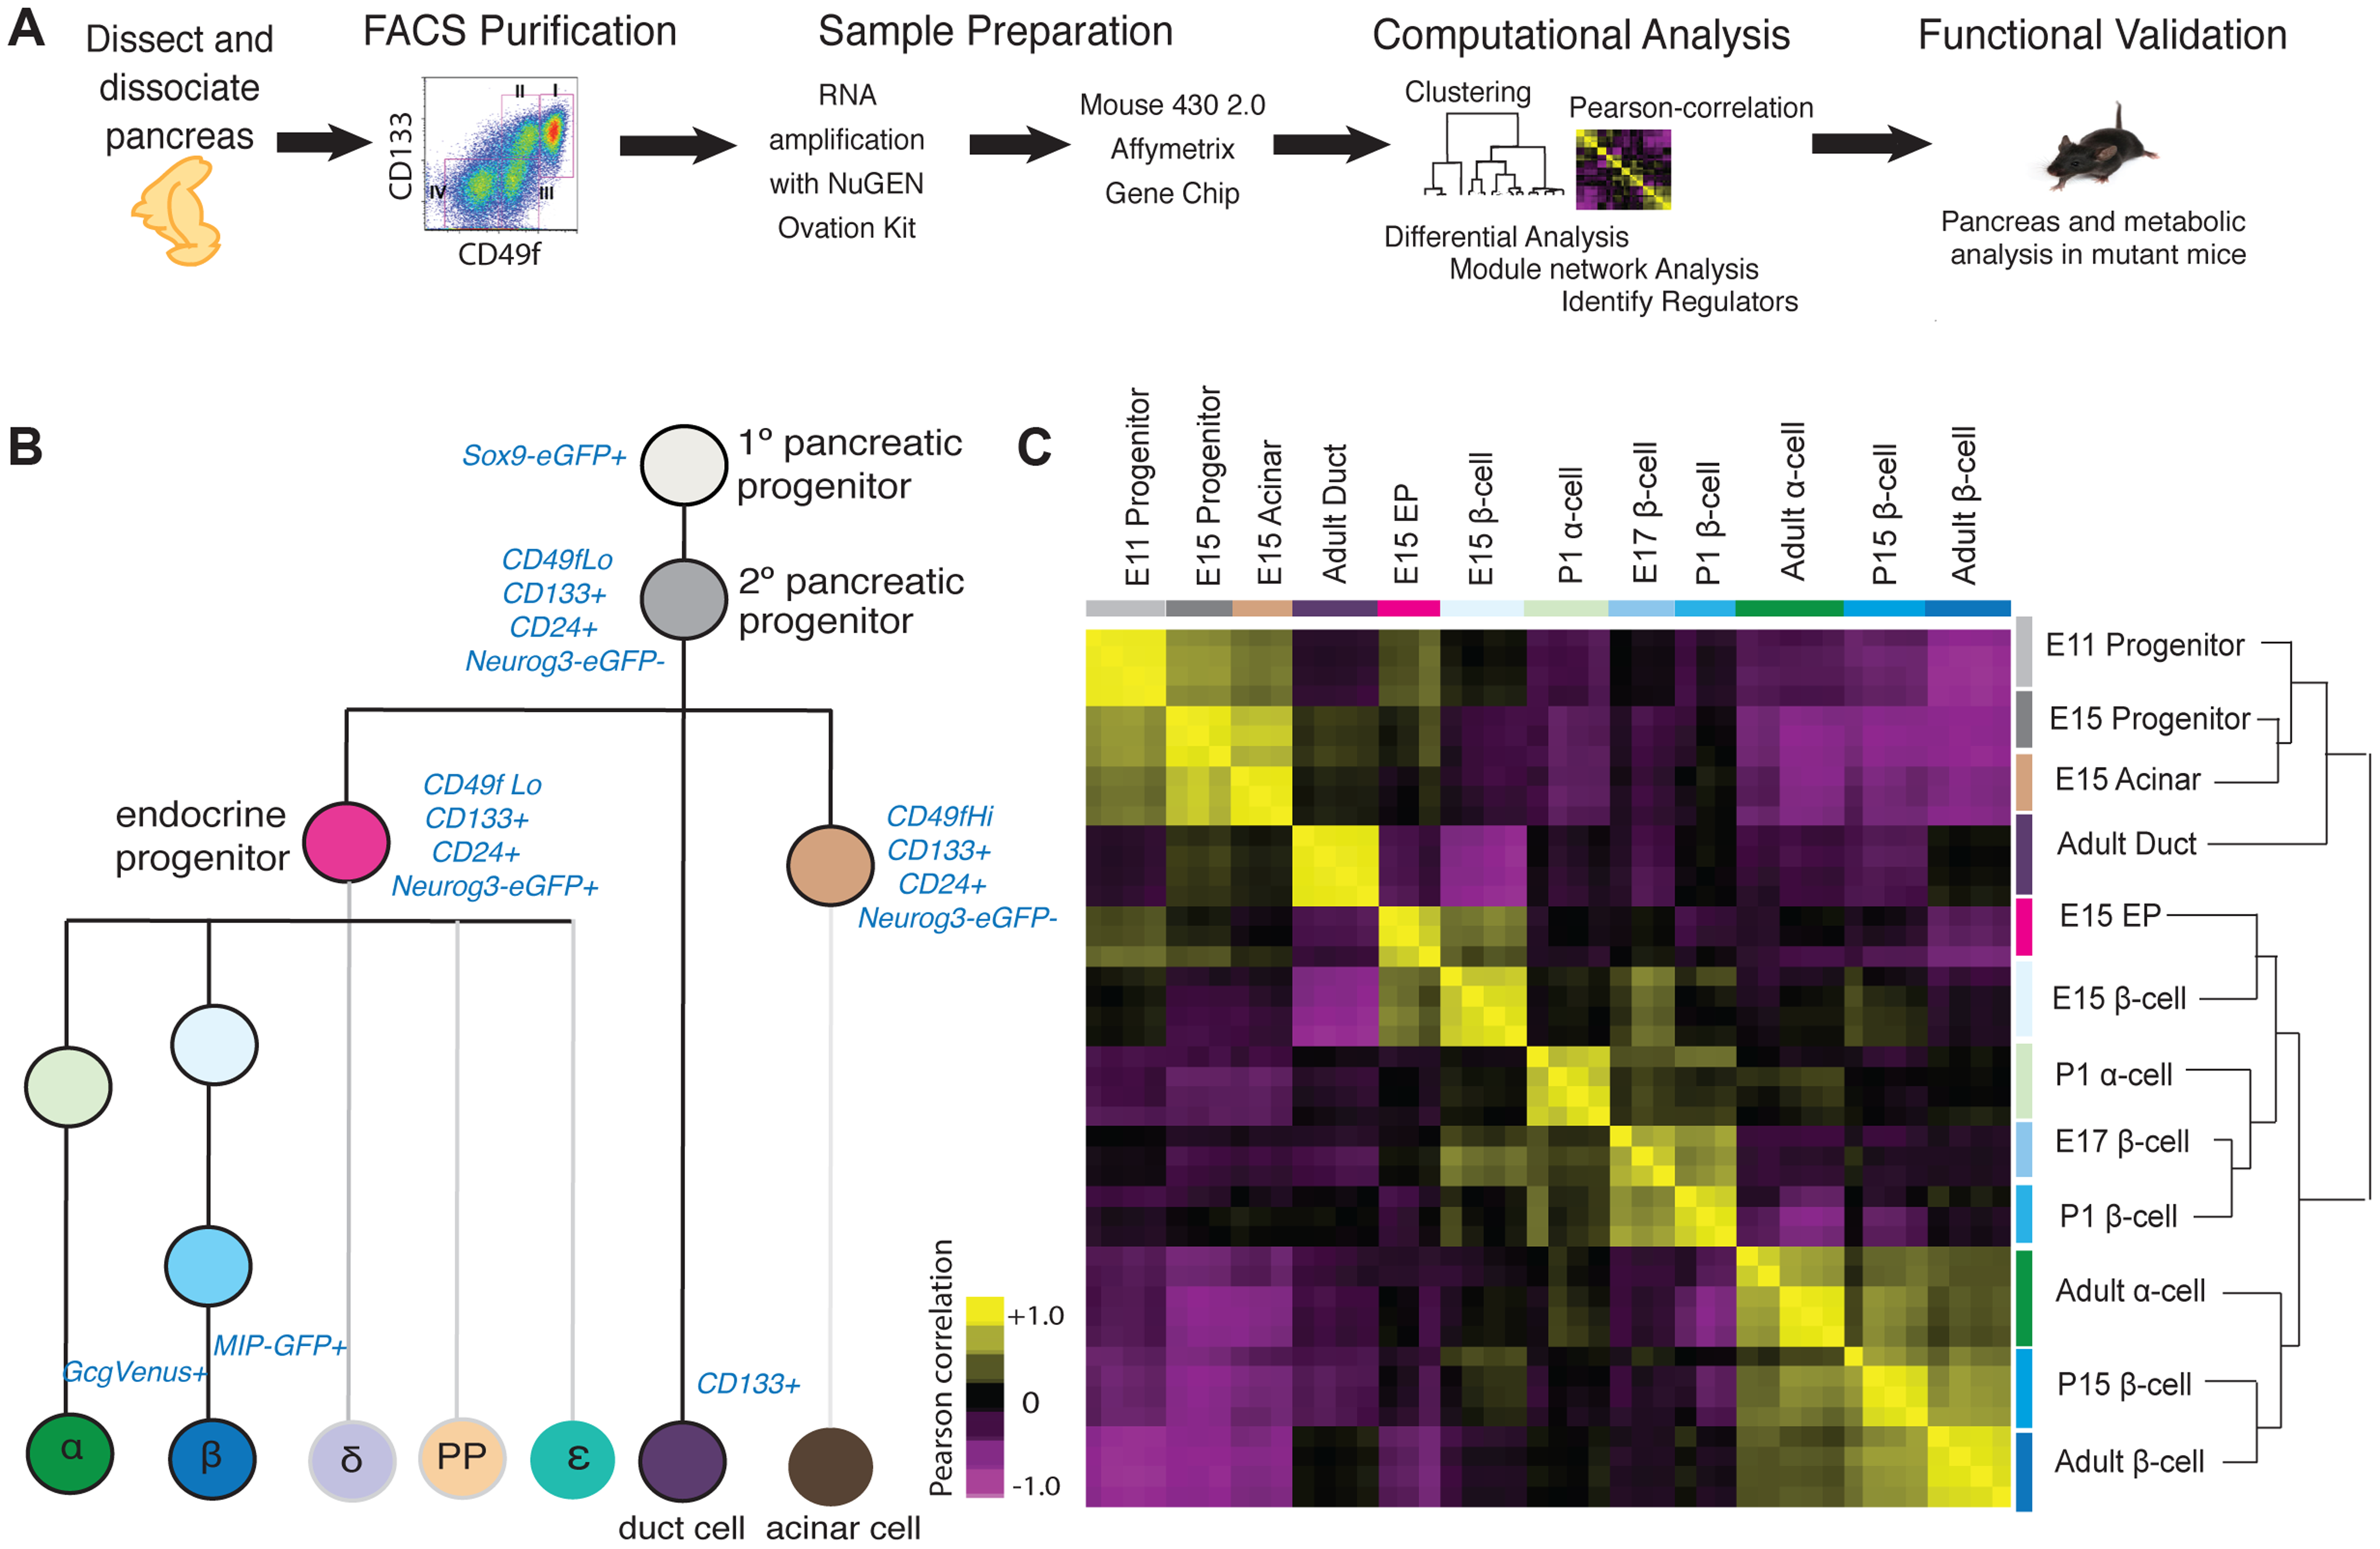 Acquisition and analysis of global gene-expression.